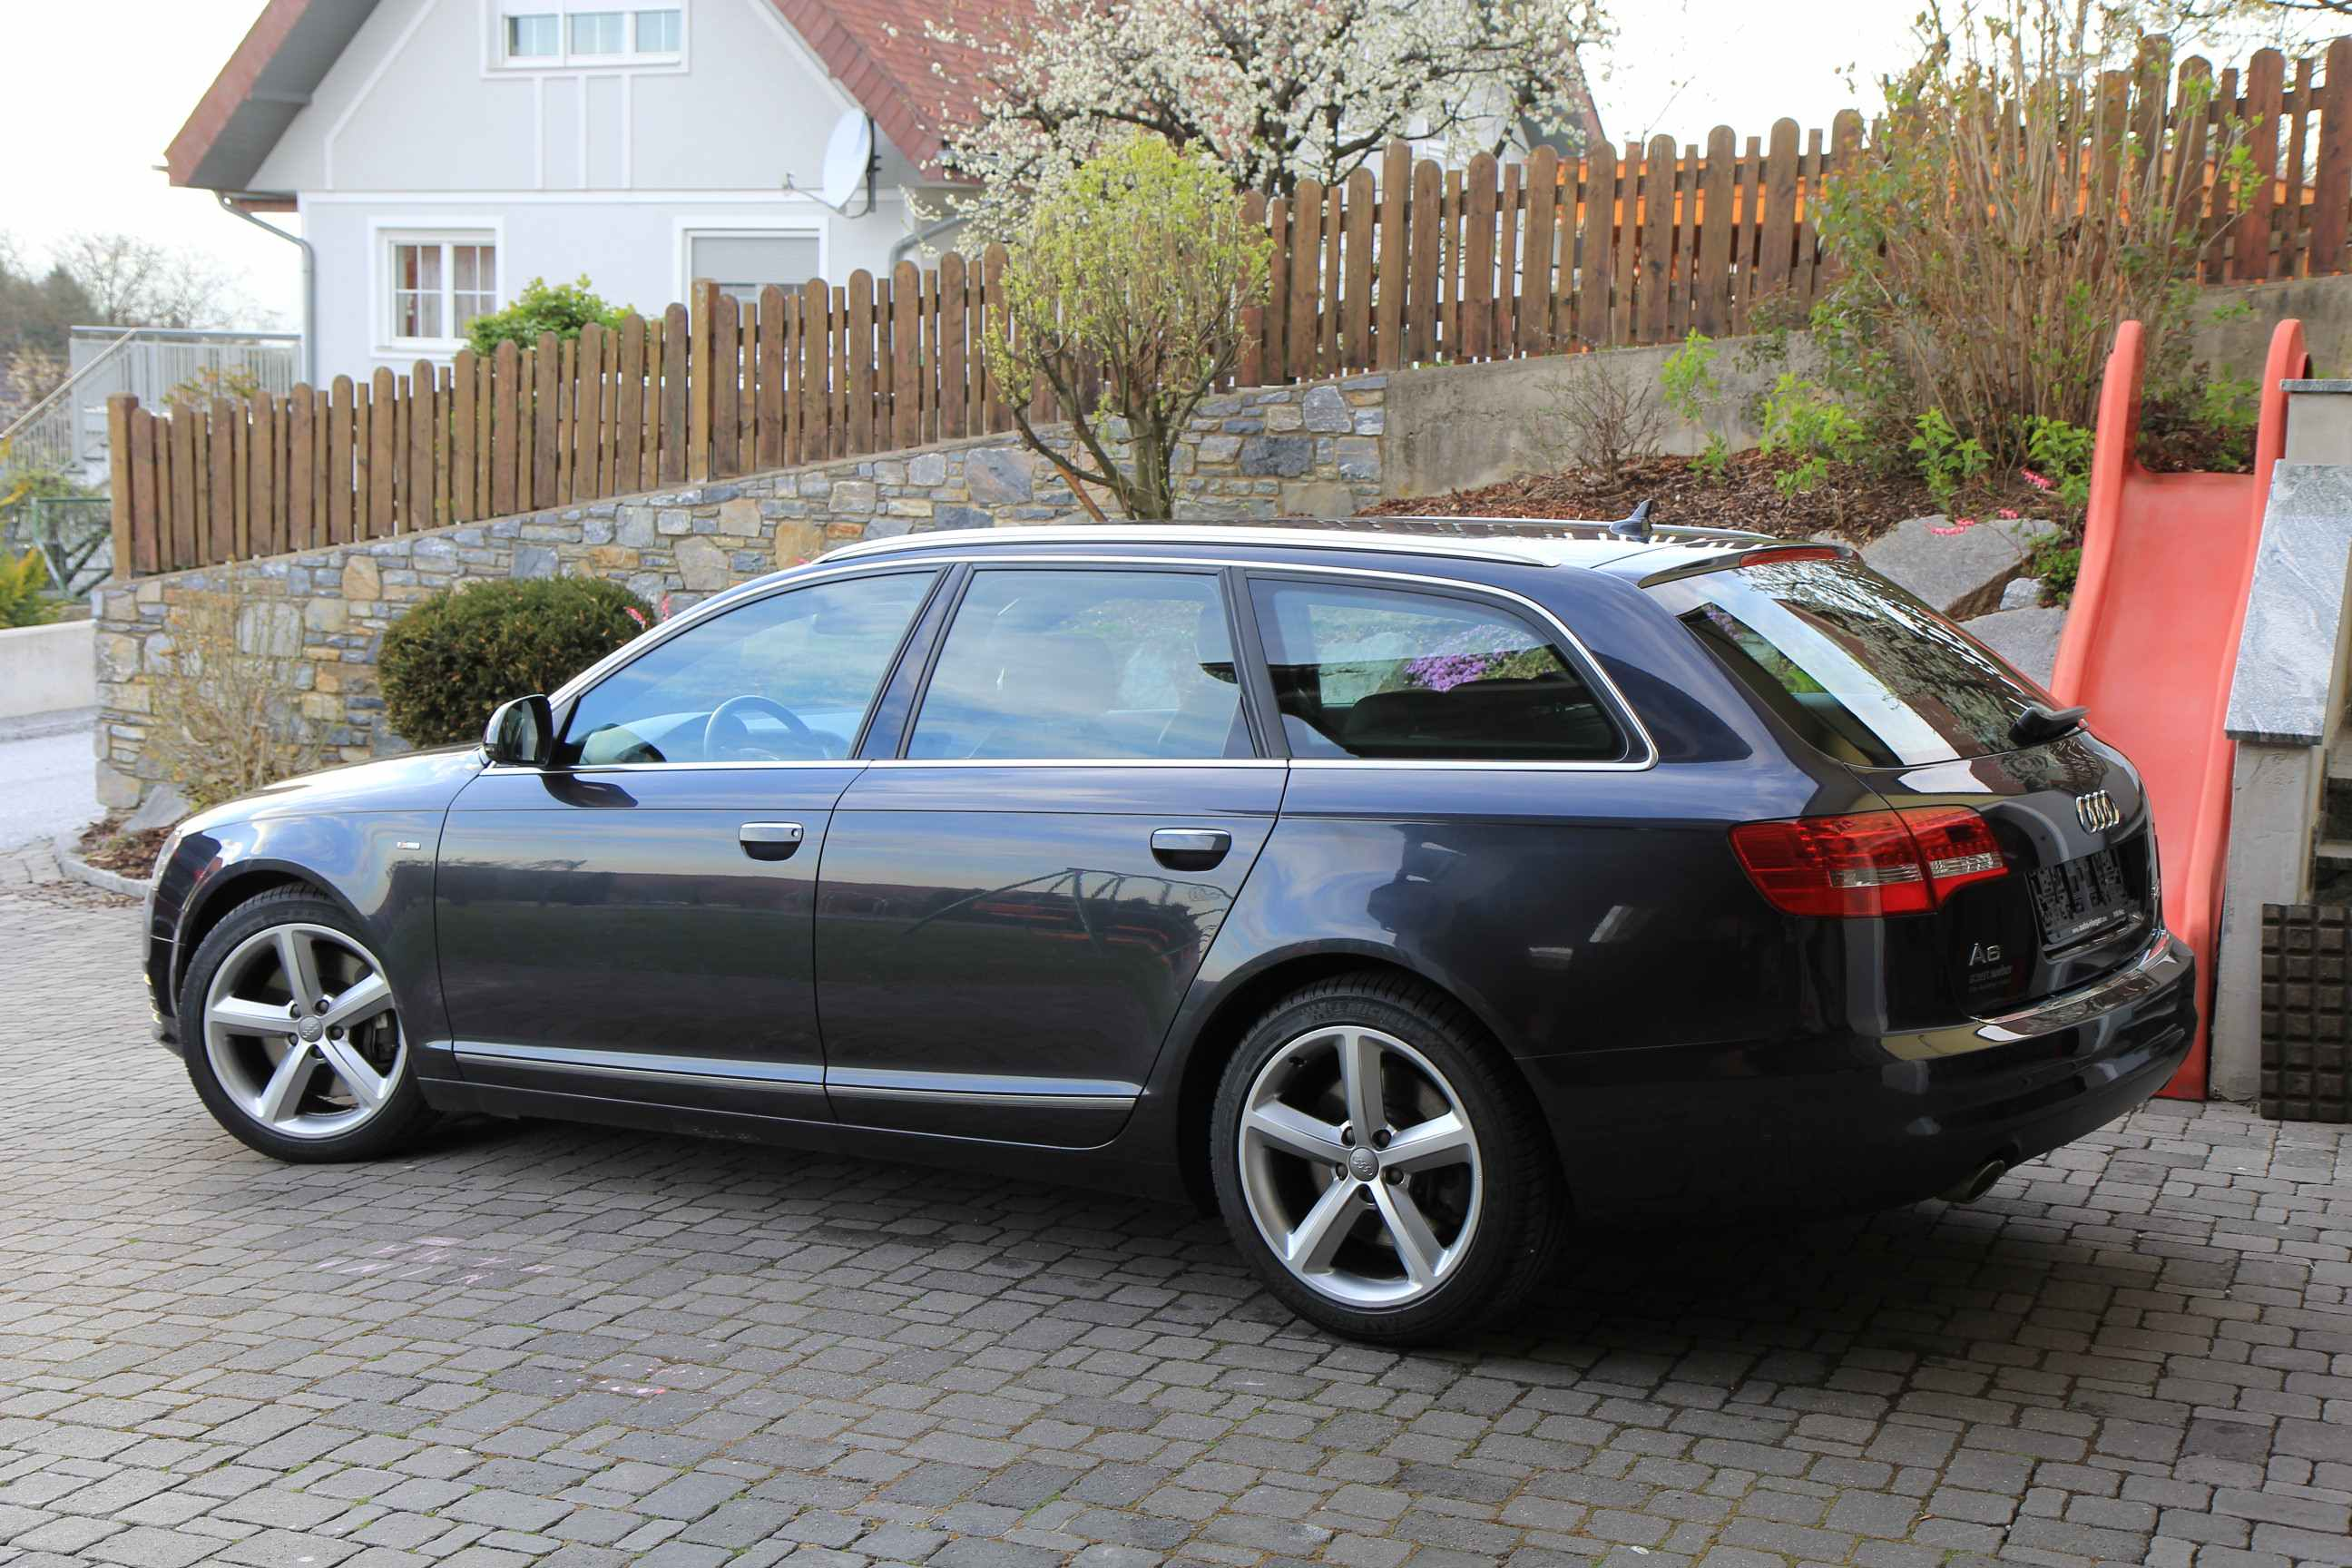 2004 Audi A6 3.2 FSI quattro Automatic C6 related infomation ...